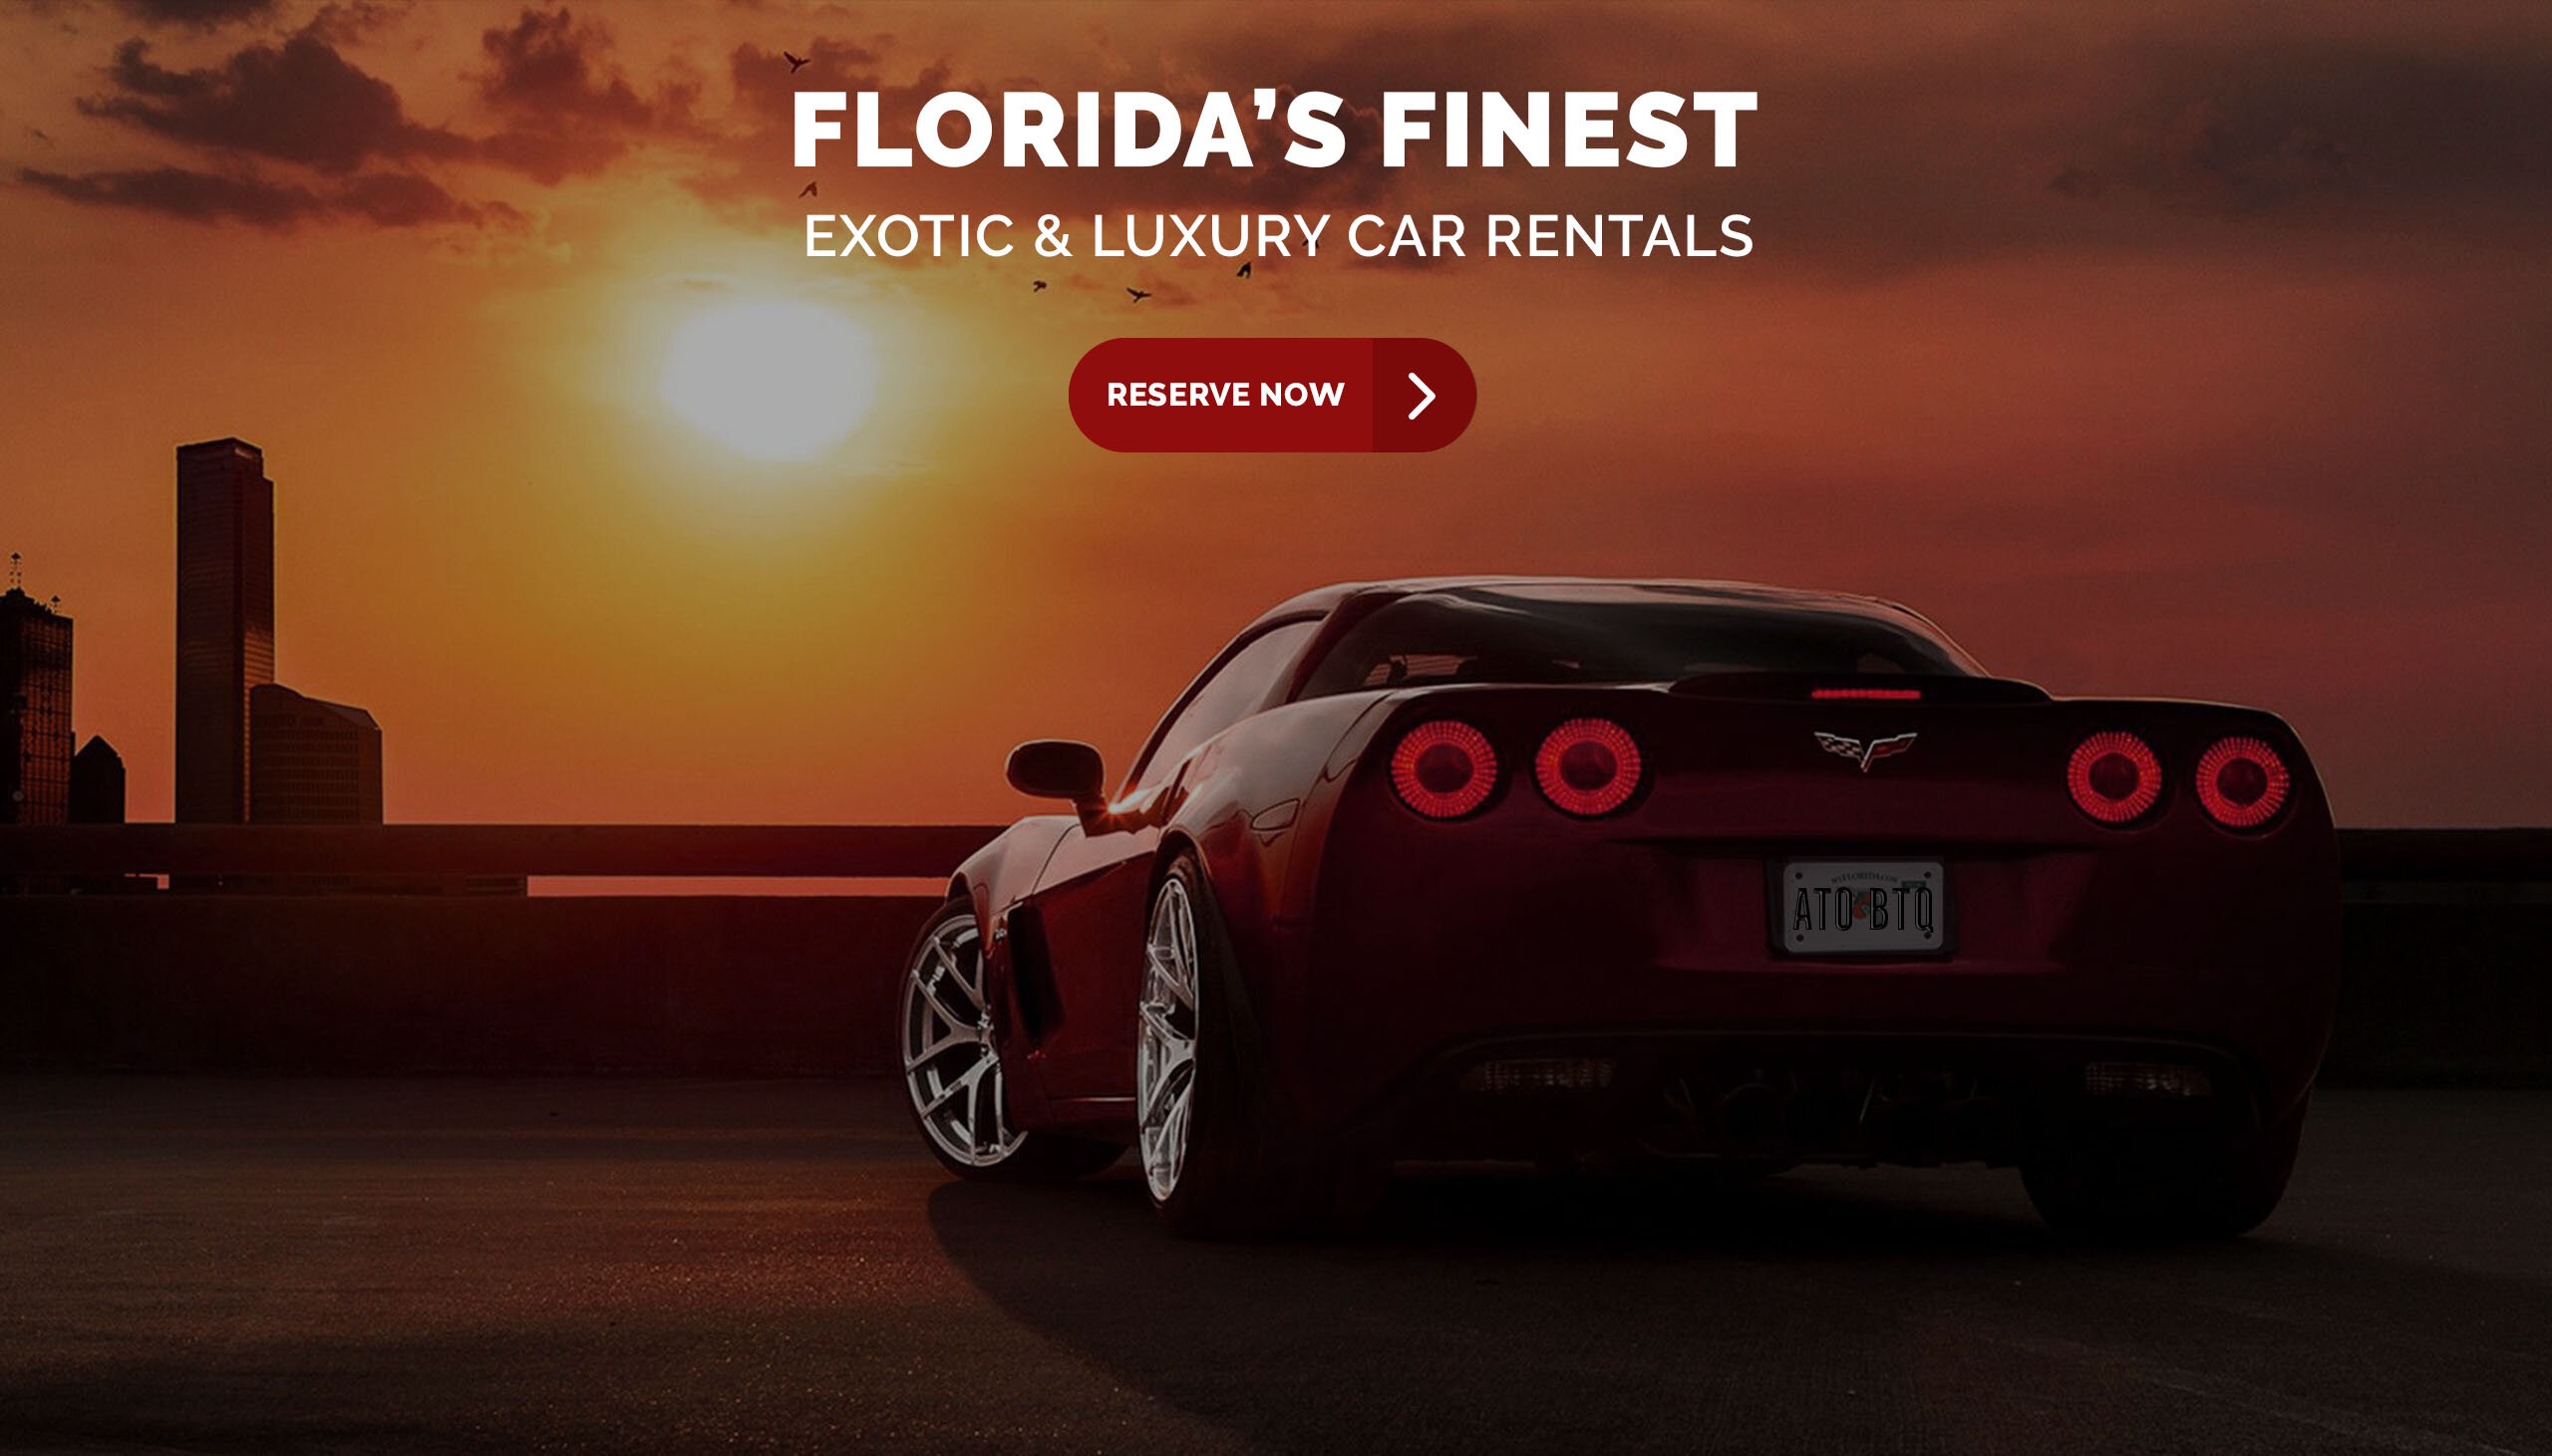 florida finest car rental.